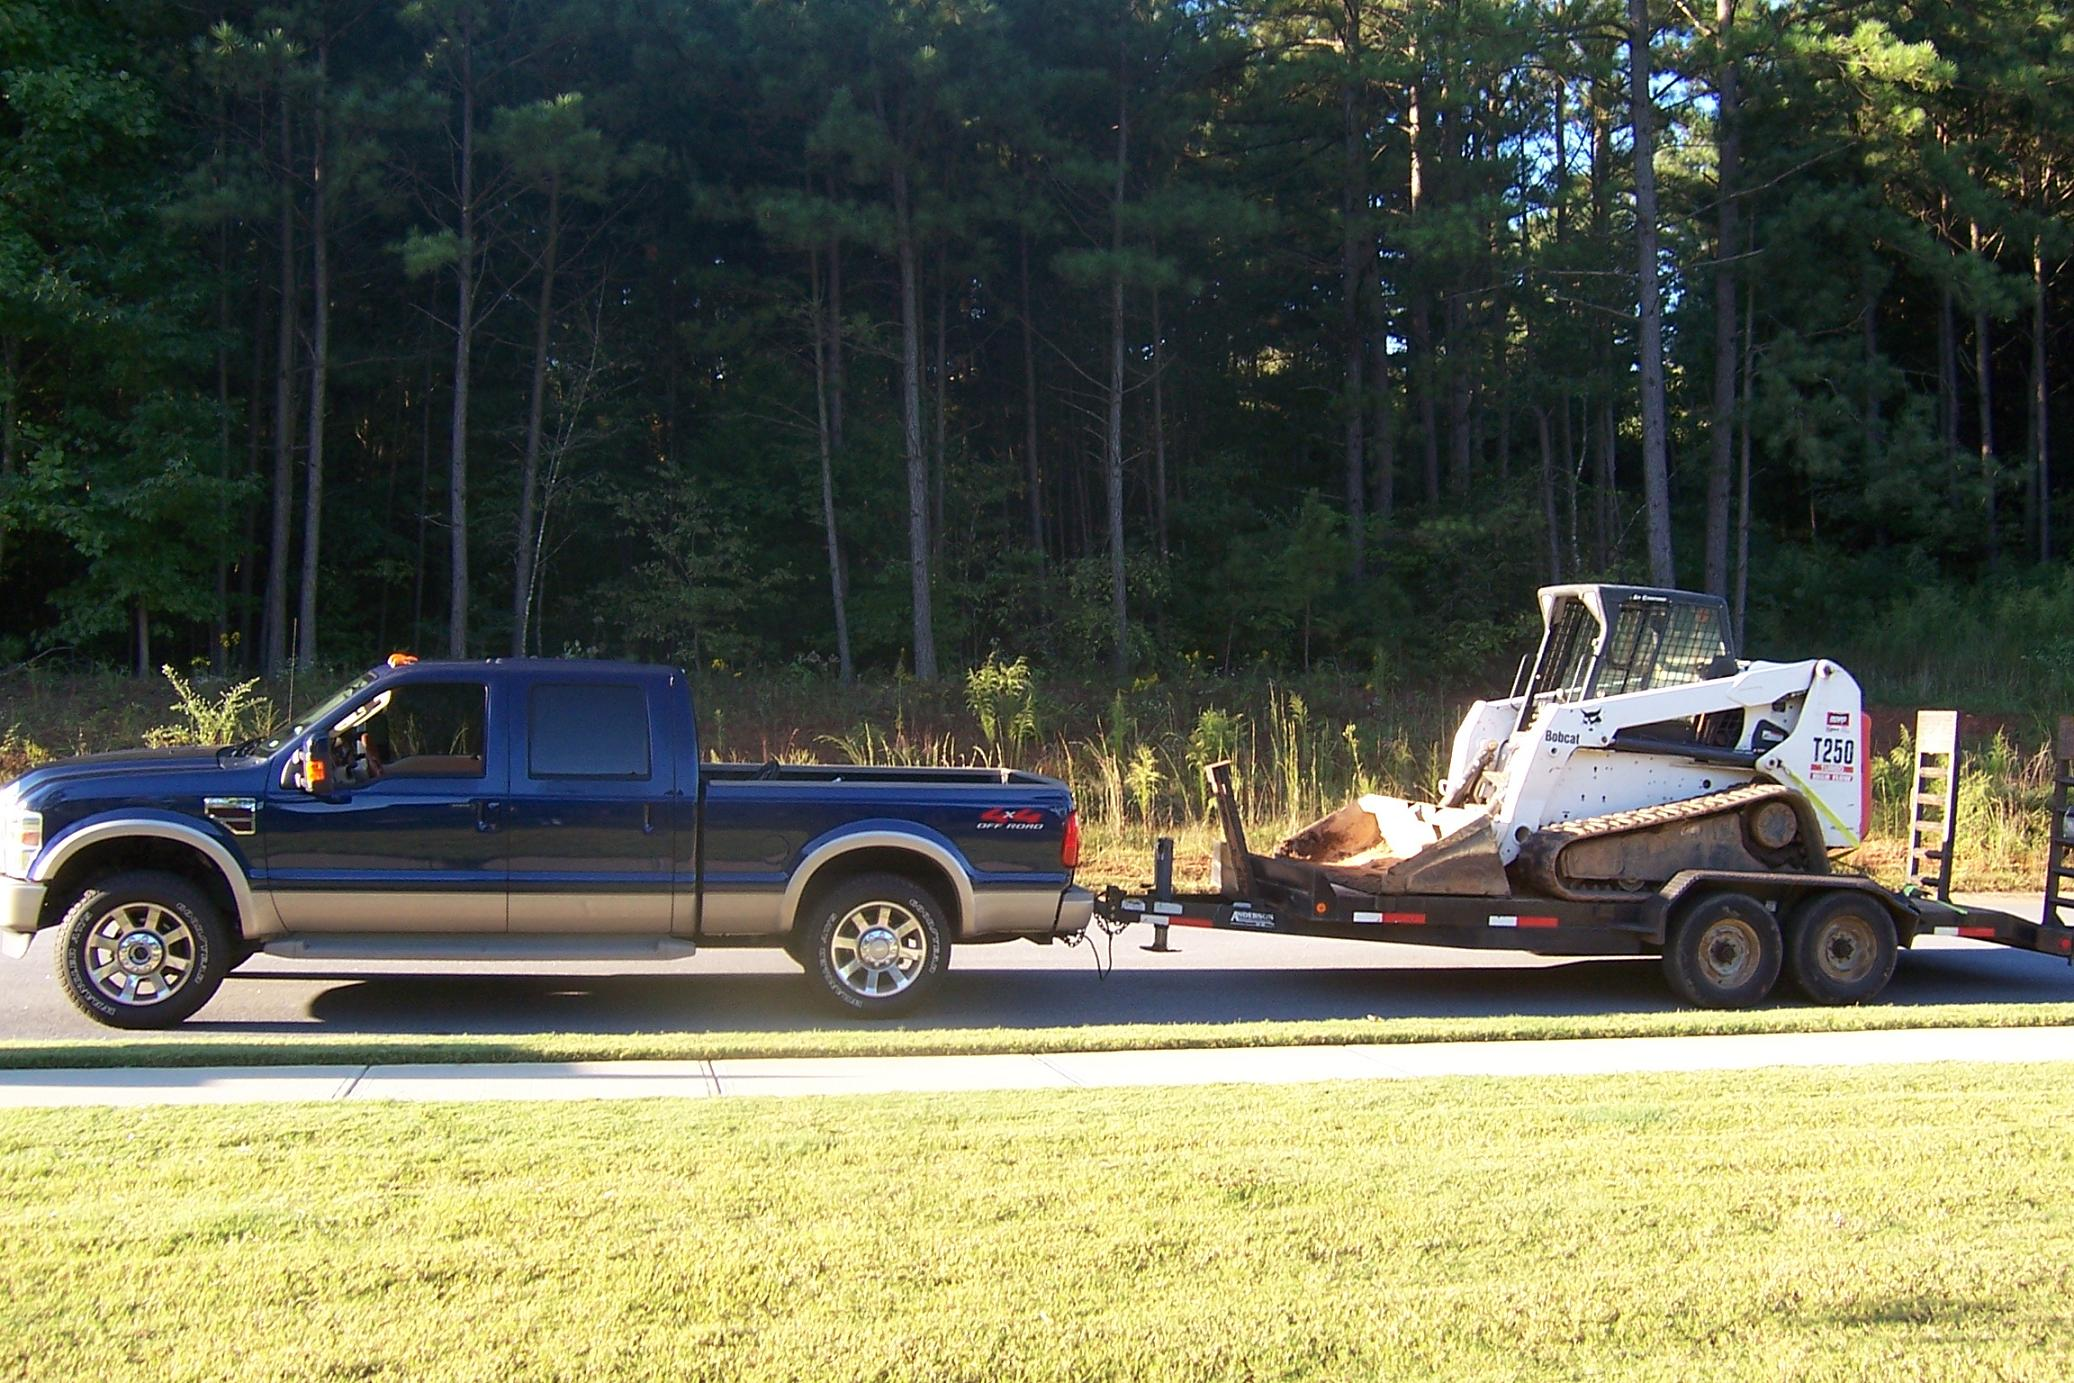 Show Me A Picture Of A Bobcat >> Pics of Towing - Page 5 - Diesel Forum - TheDieselStop.com